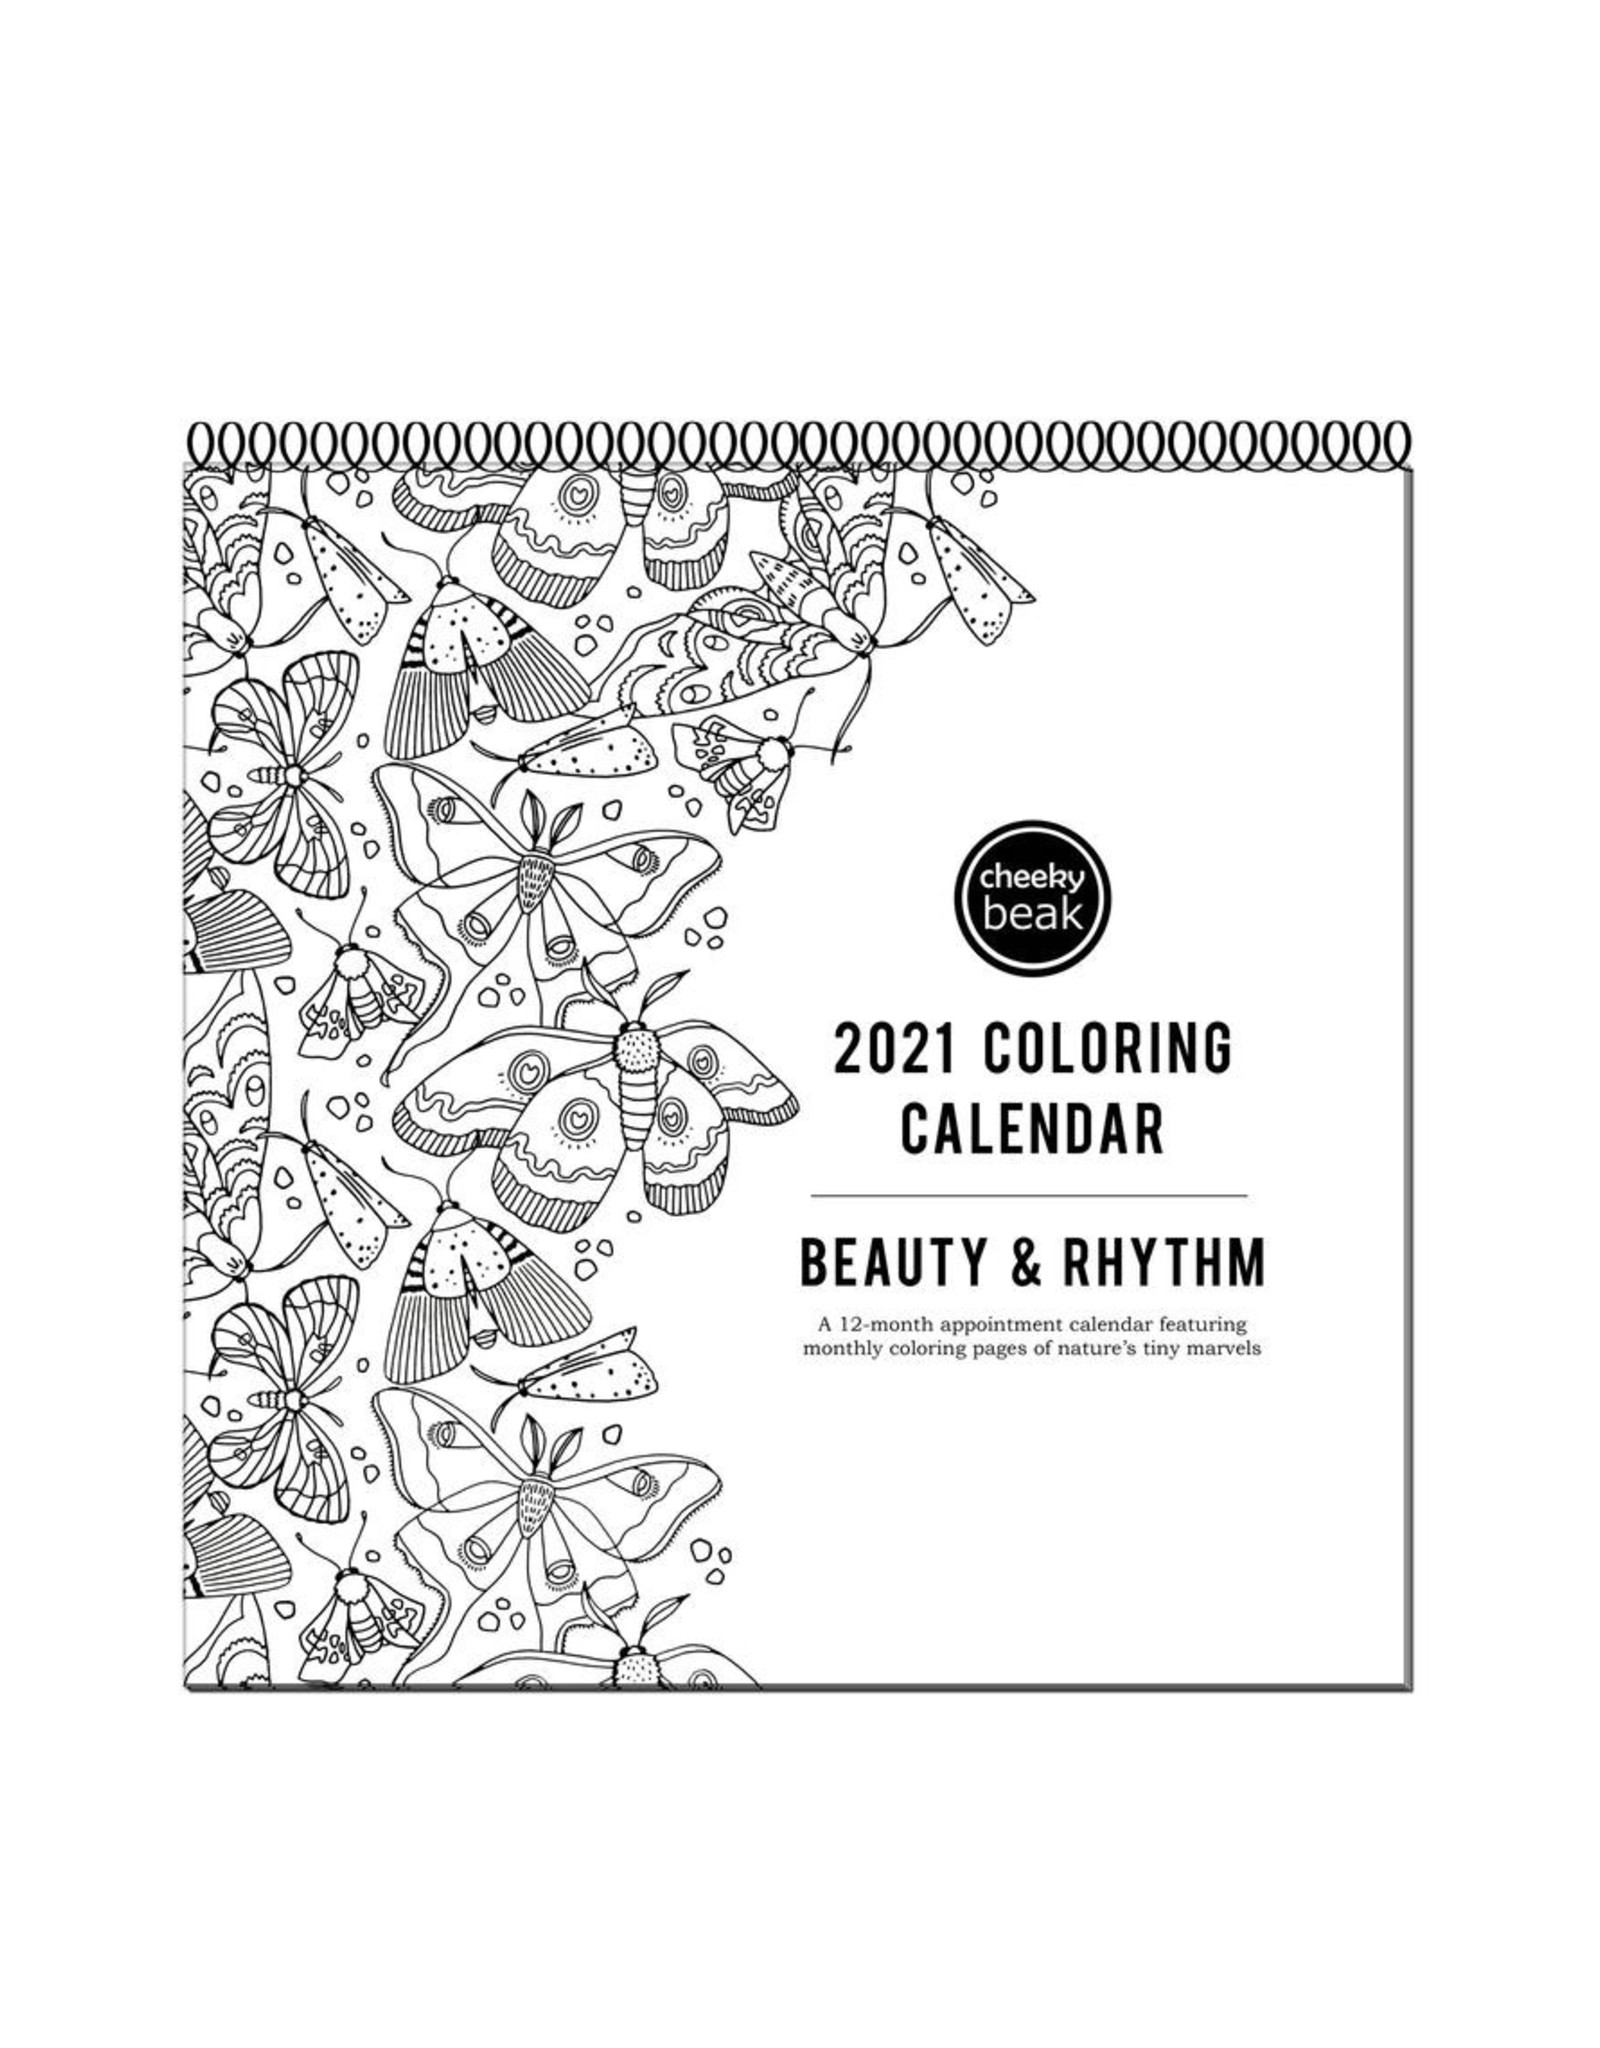 Cheeky Beak Card Co. 2021 Coloring Calendar by Cheeky Beak Card Co.